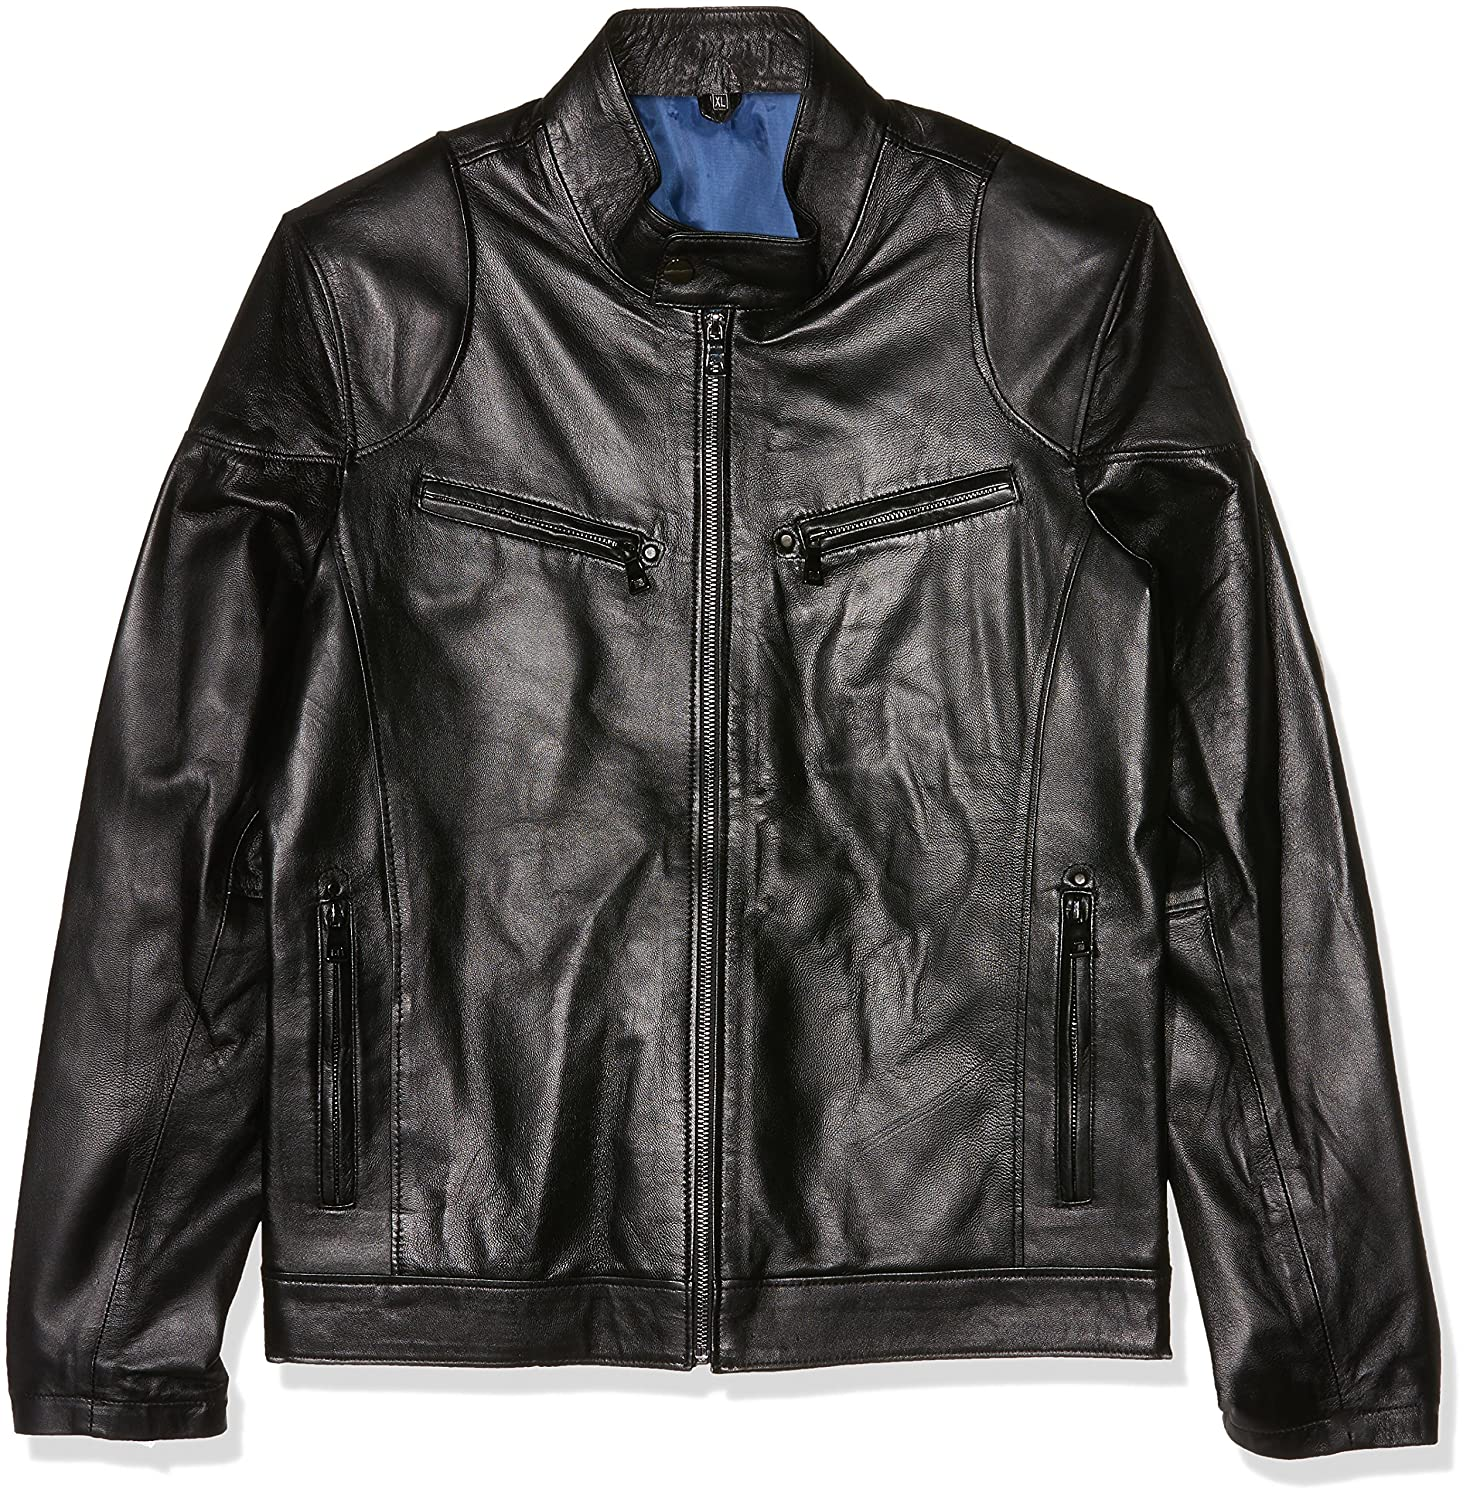 TALLA XL. Giorgio Di Mare Cazadora Piel Men's Leather Jacket